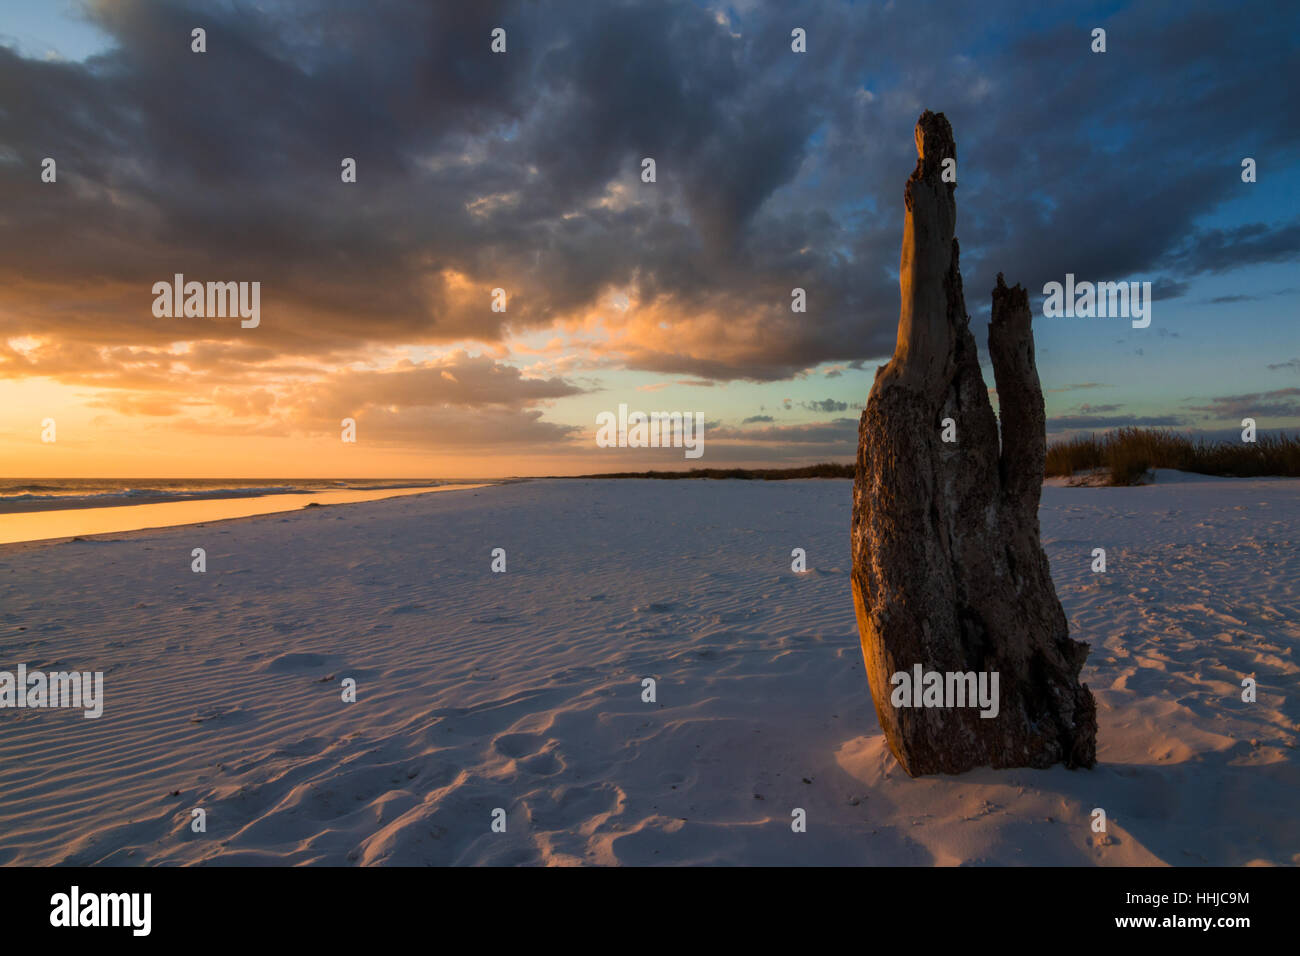 A piece of driftwood with personality is lit by a beautiful sunset over a beautiful white Florida Gulf coast beach Stock Photo